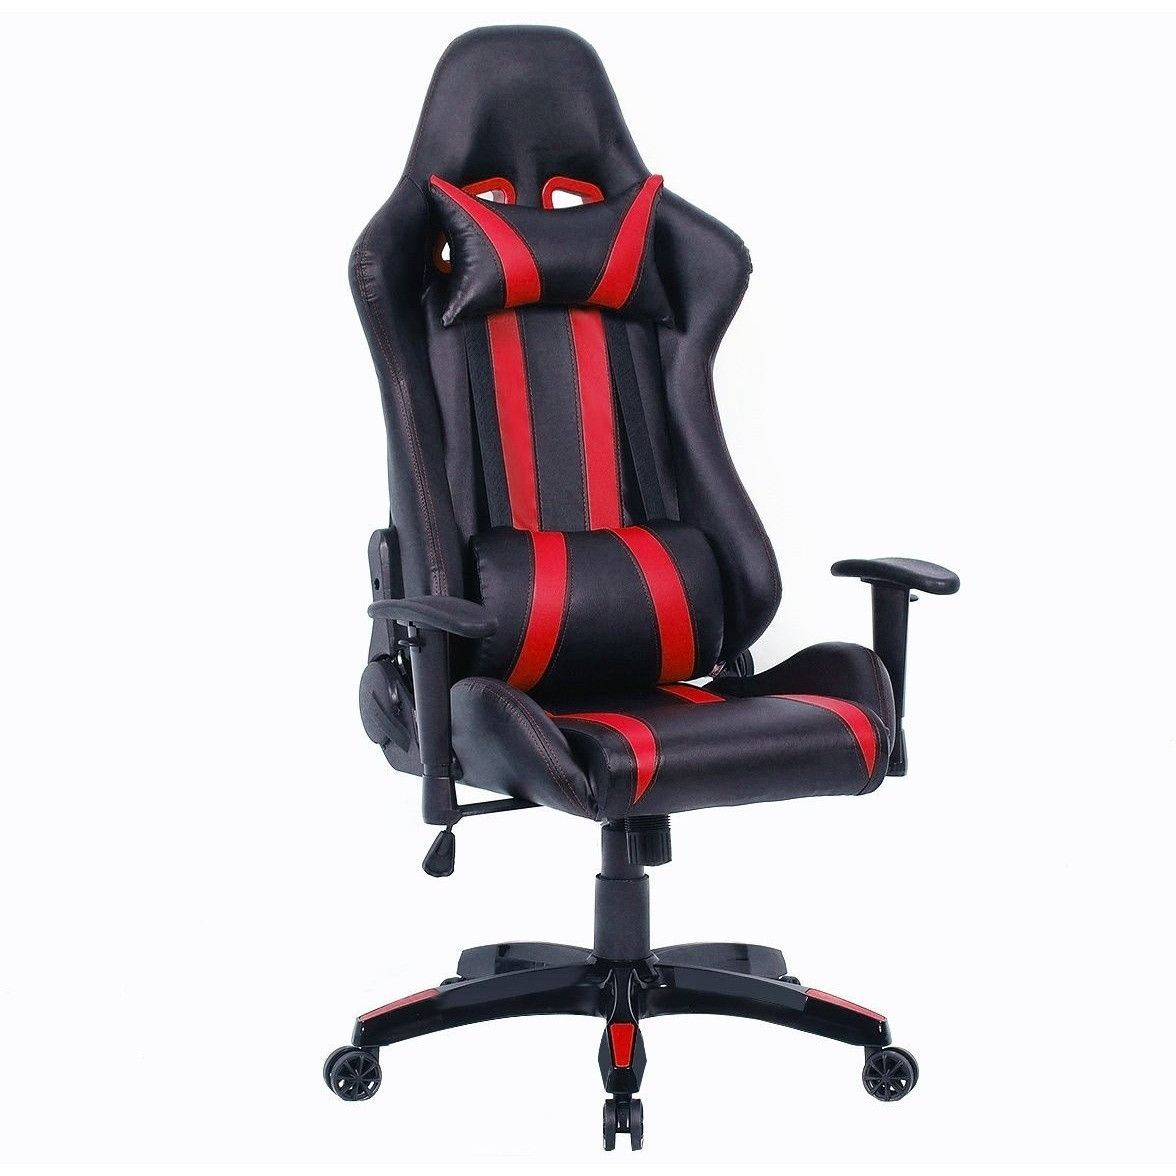 high tech office chair. Black Red Racing Stripe High Back Reclining Gaming Computer Office Chair Tech O